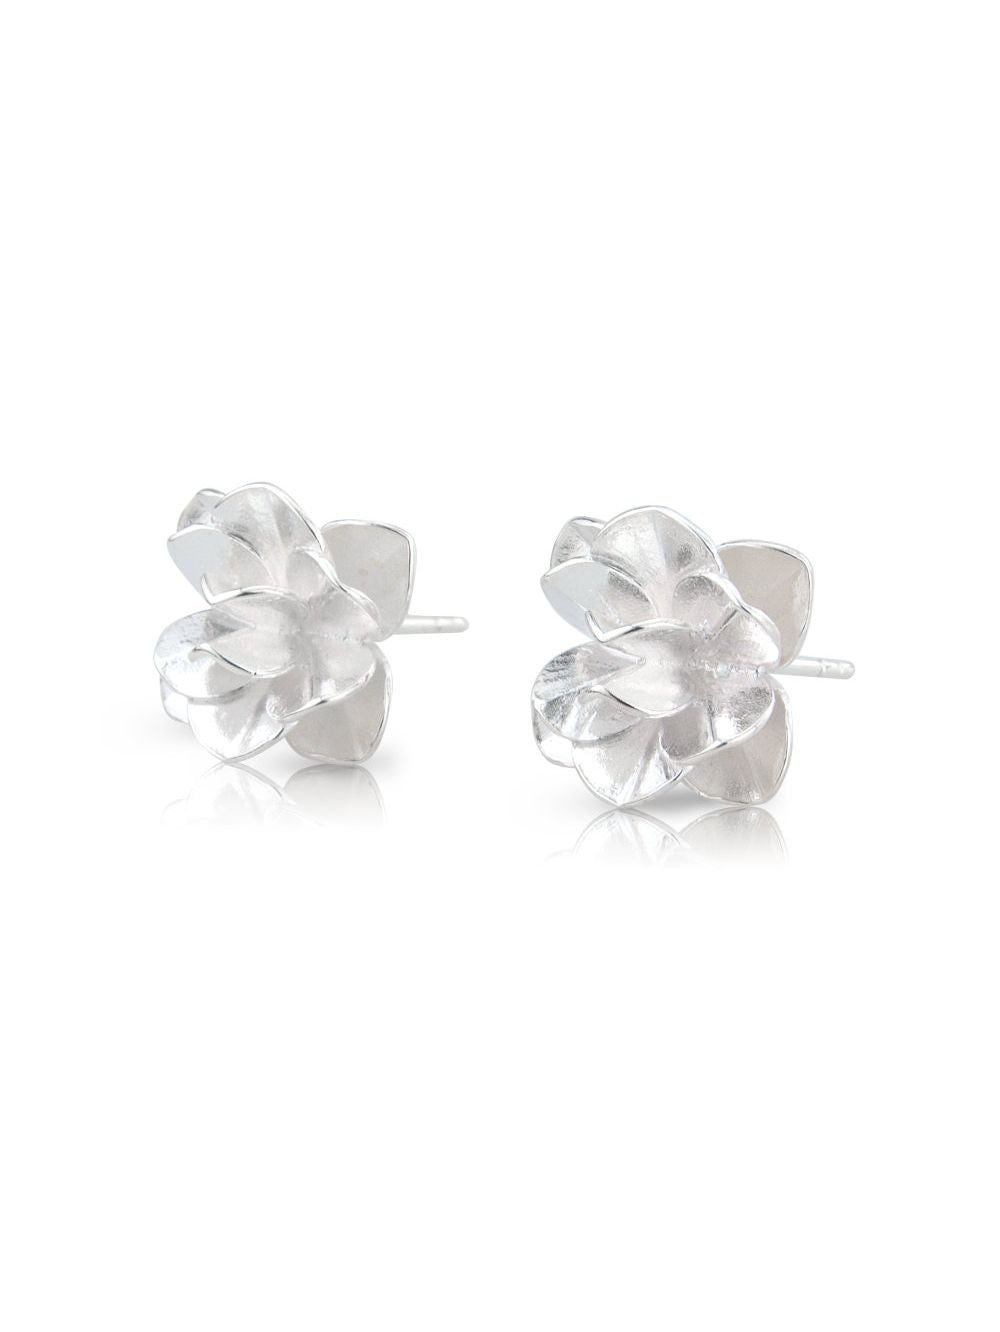 Ísold Silver Ear Studs by Aurum - Art Jewellery Store: Song of Jewellery